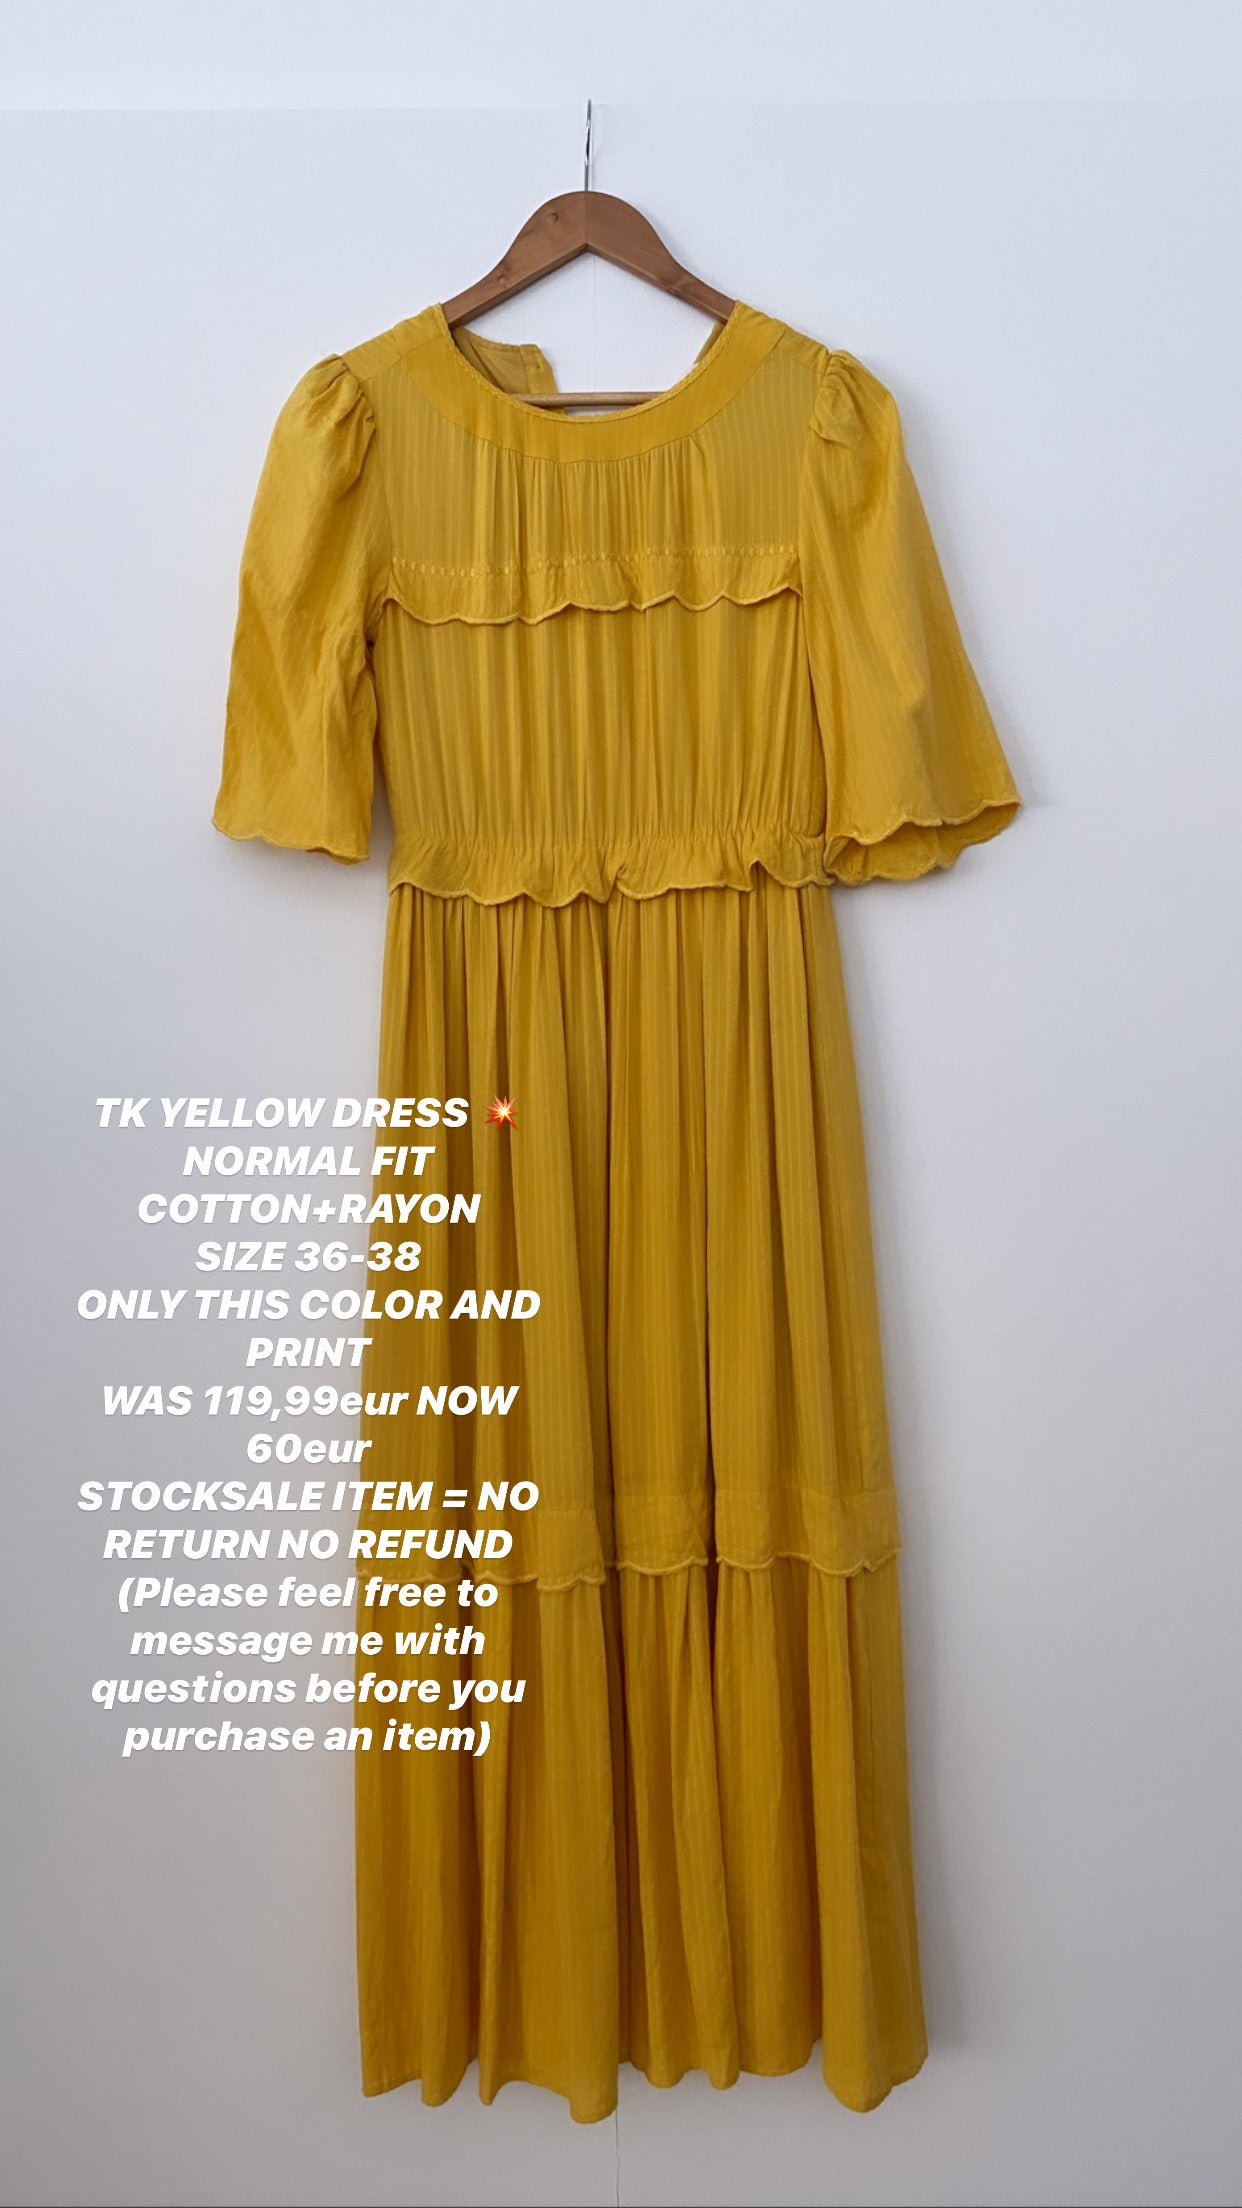 TK YELLOW DRESS